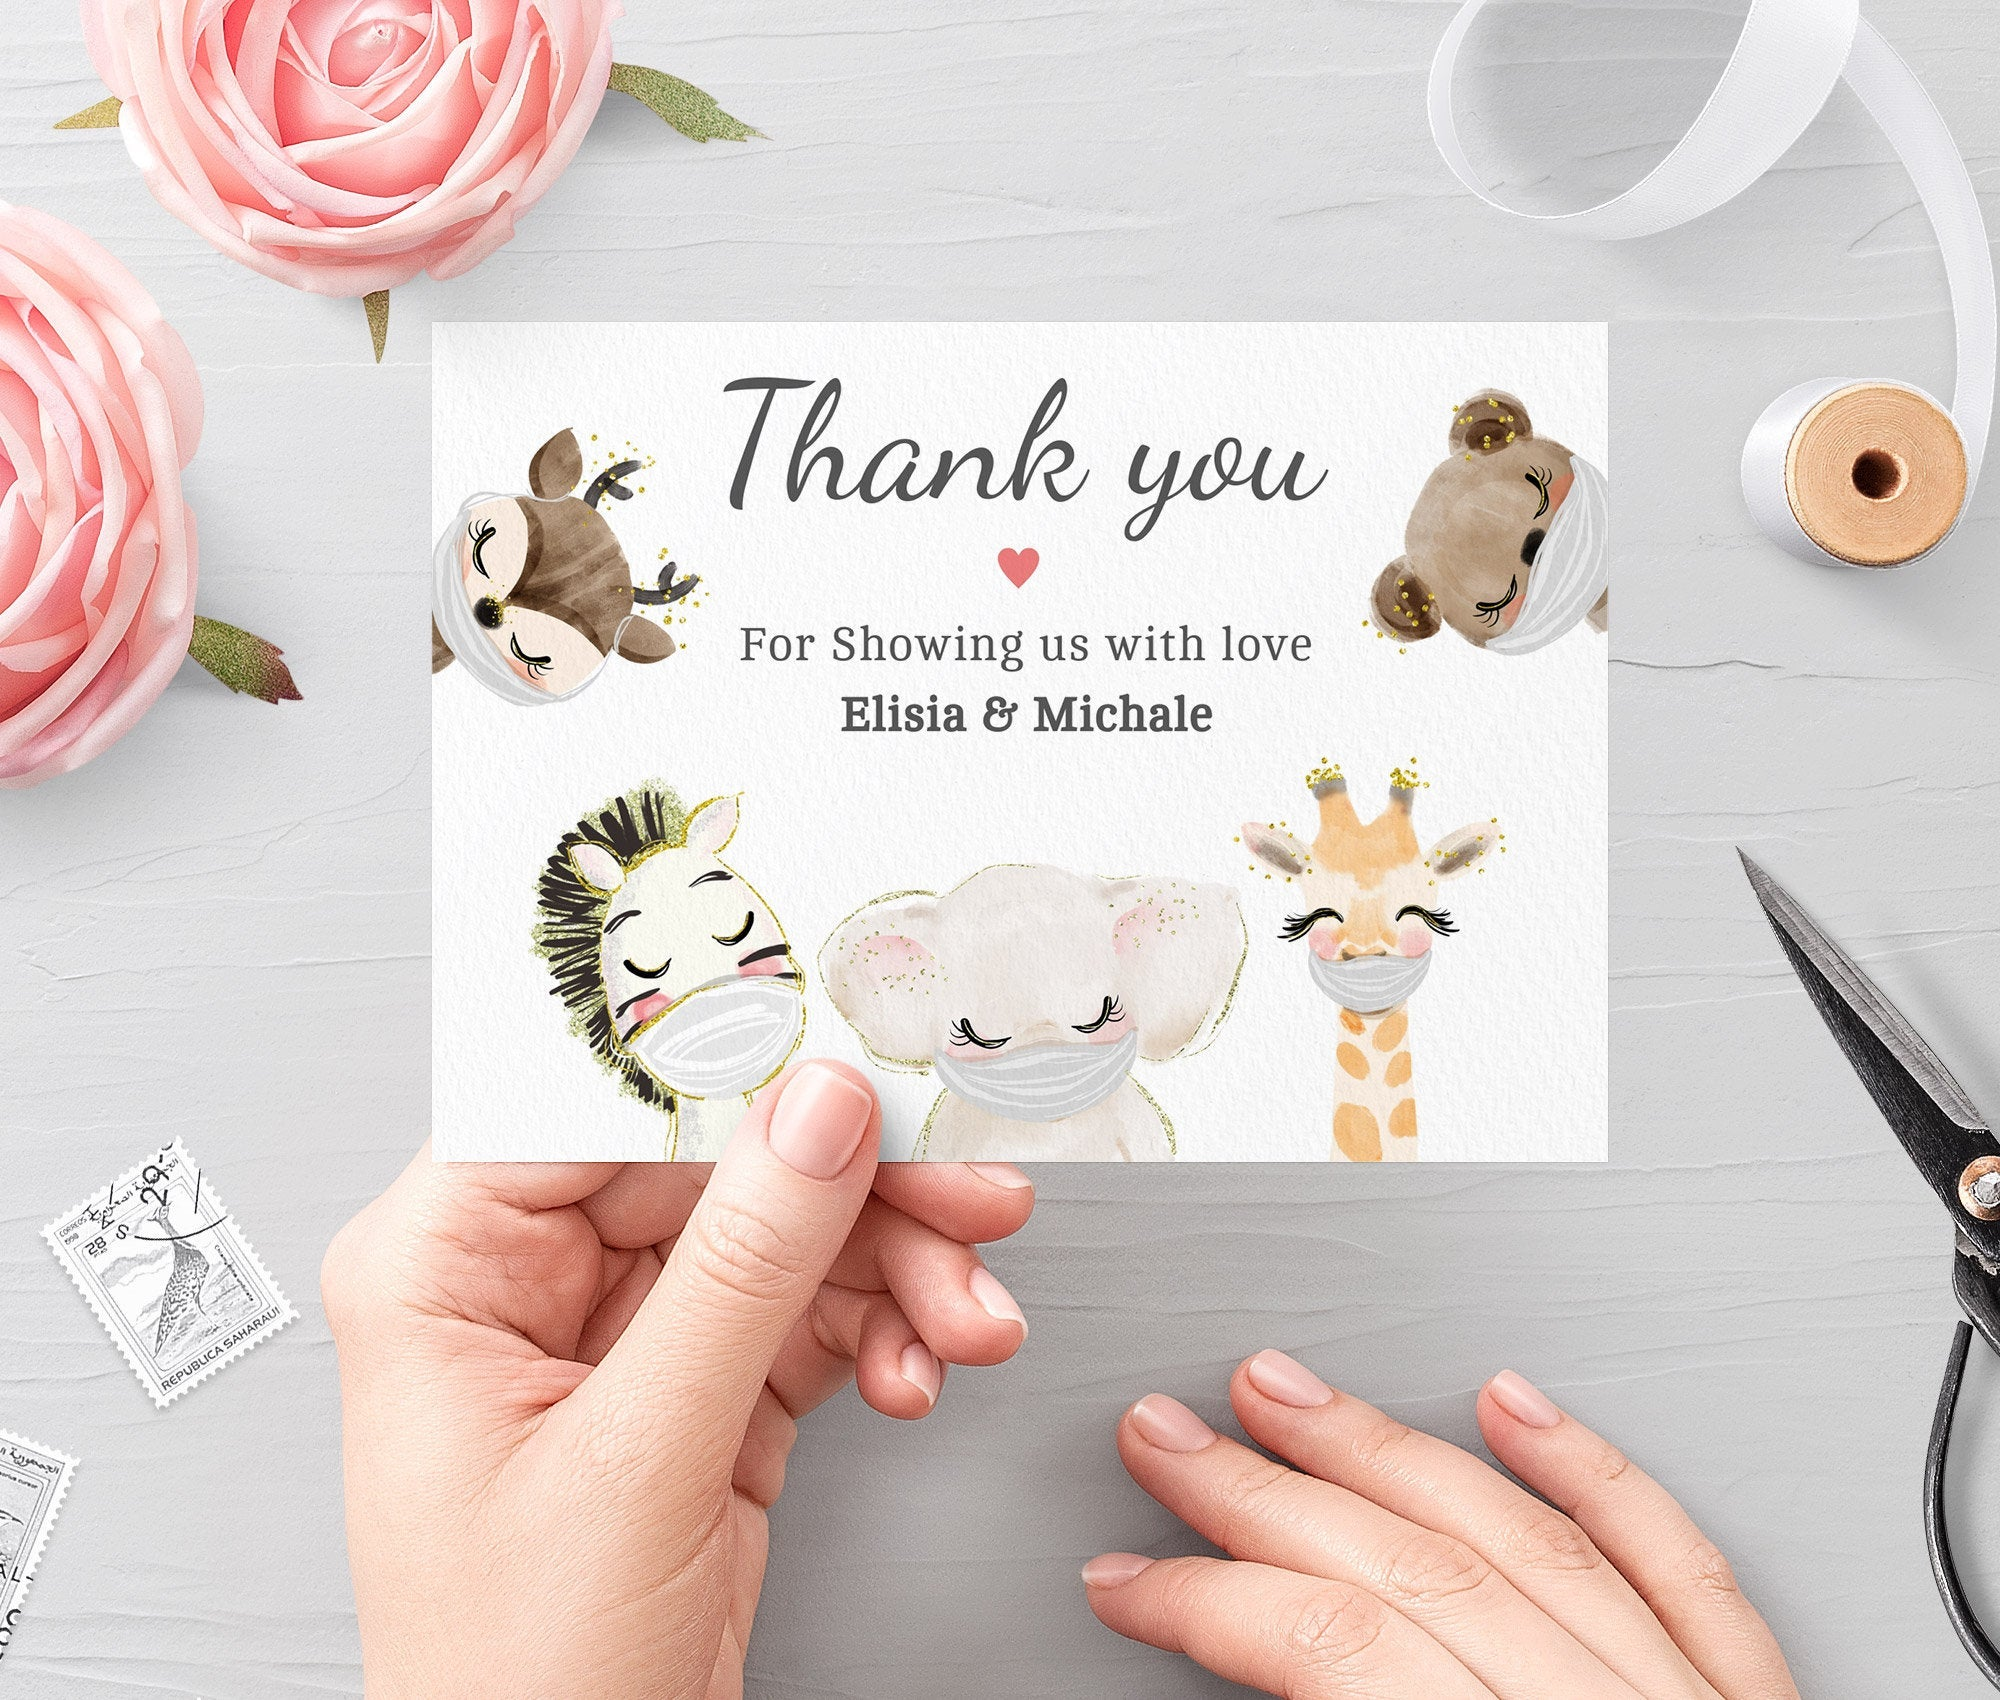 Drive By Baby Shower Editable Thank You Card Template • Printable Folded Thank You • Cards Quarantine Baby Animal • Instant Download BS3601